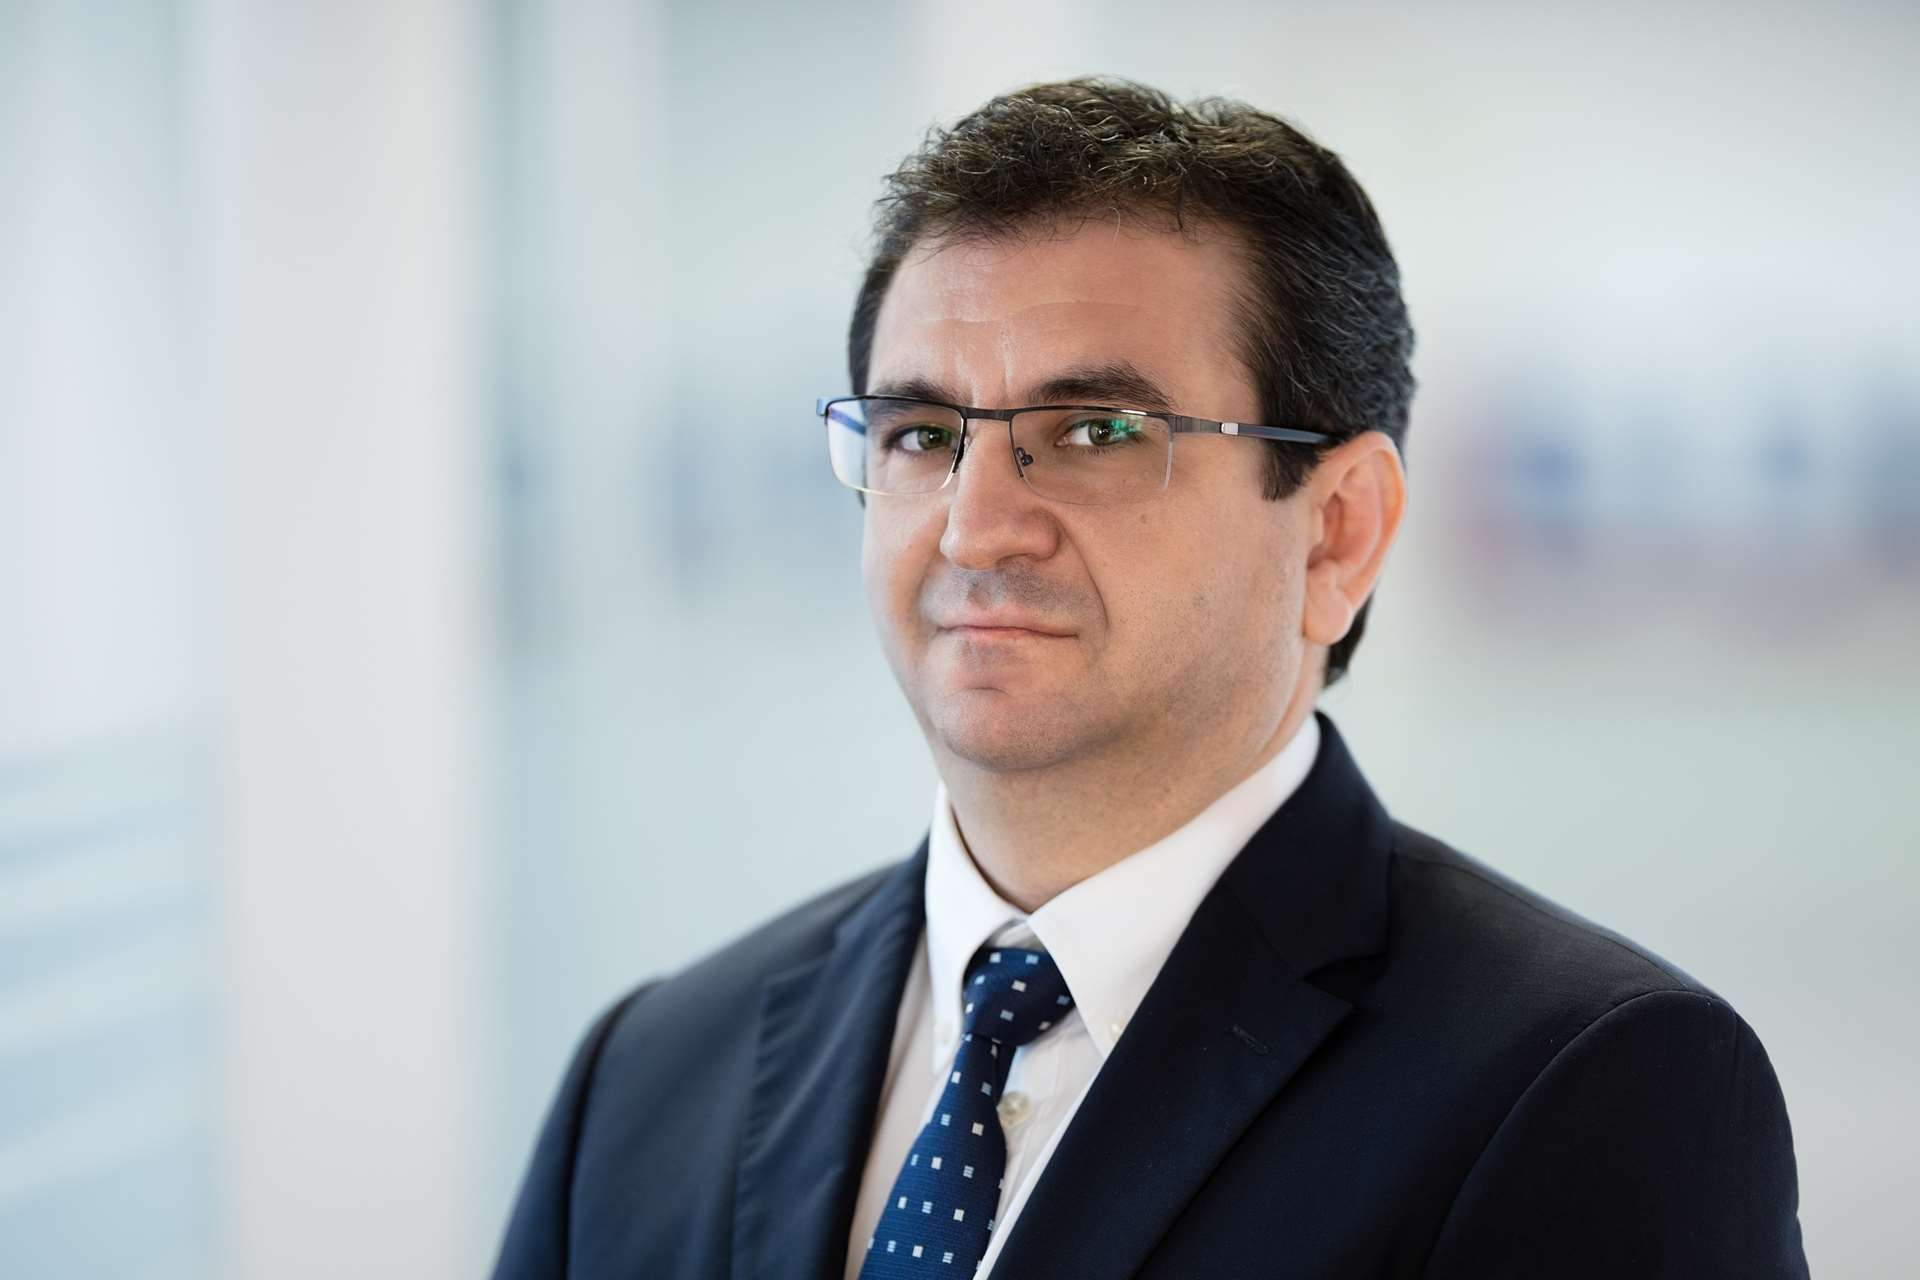 Vasile Bulata, Senior Partner Audit & Assurance